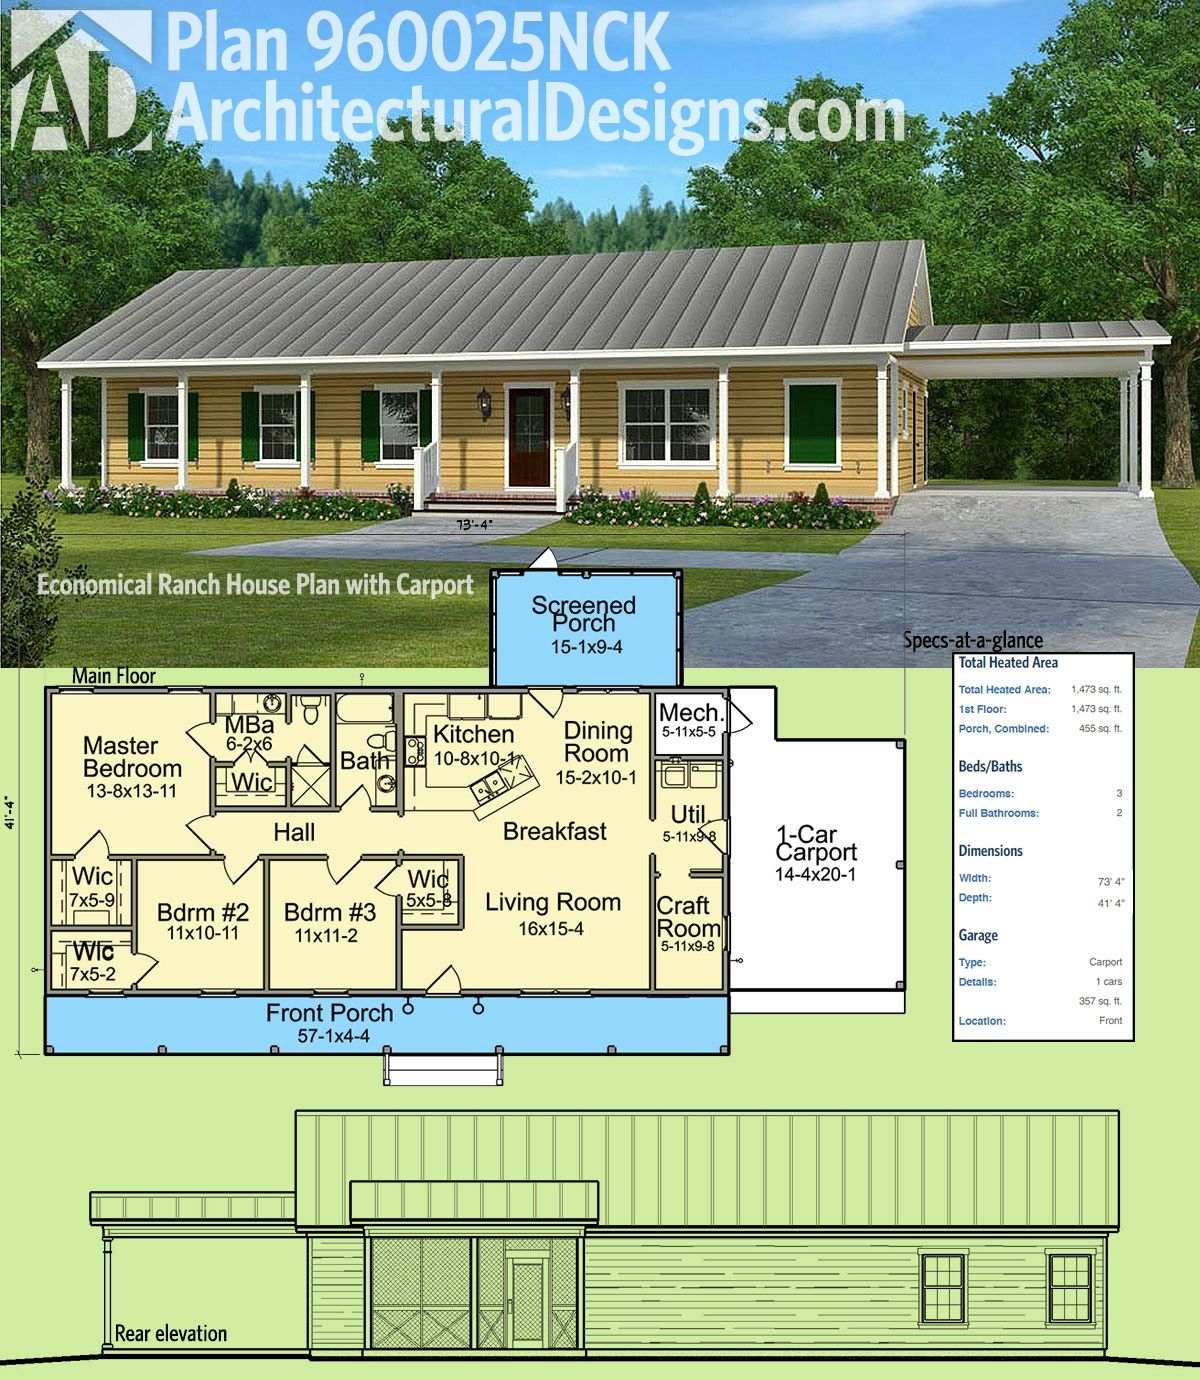 Plan 960025NCK: Economical Ranch House Plan with Carport | Simple ...